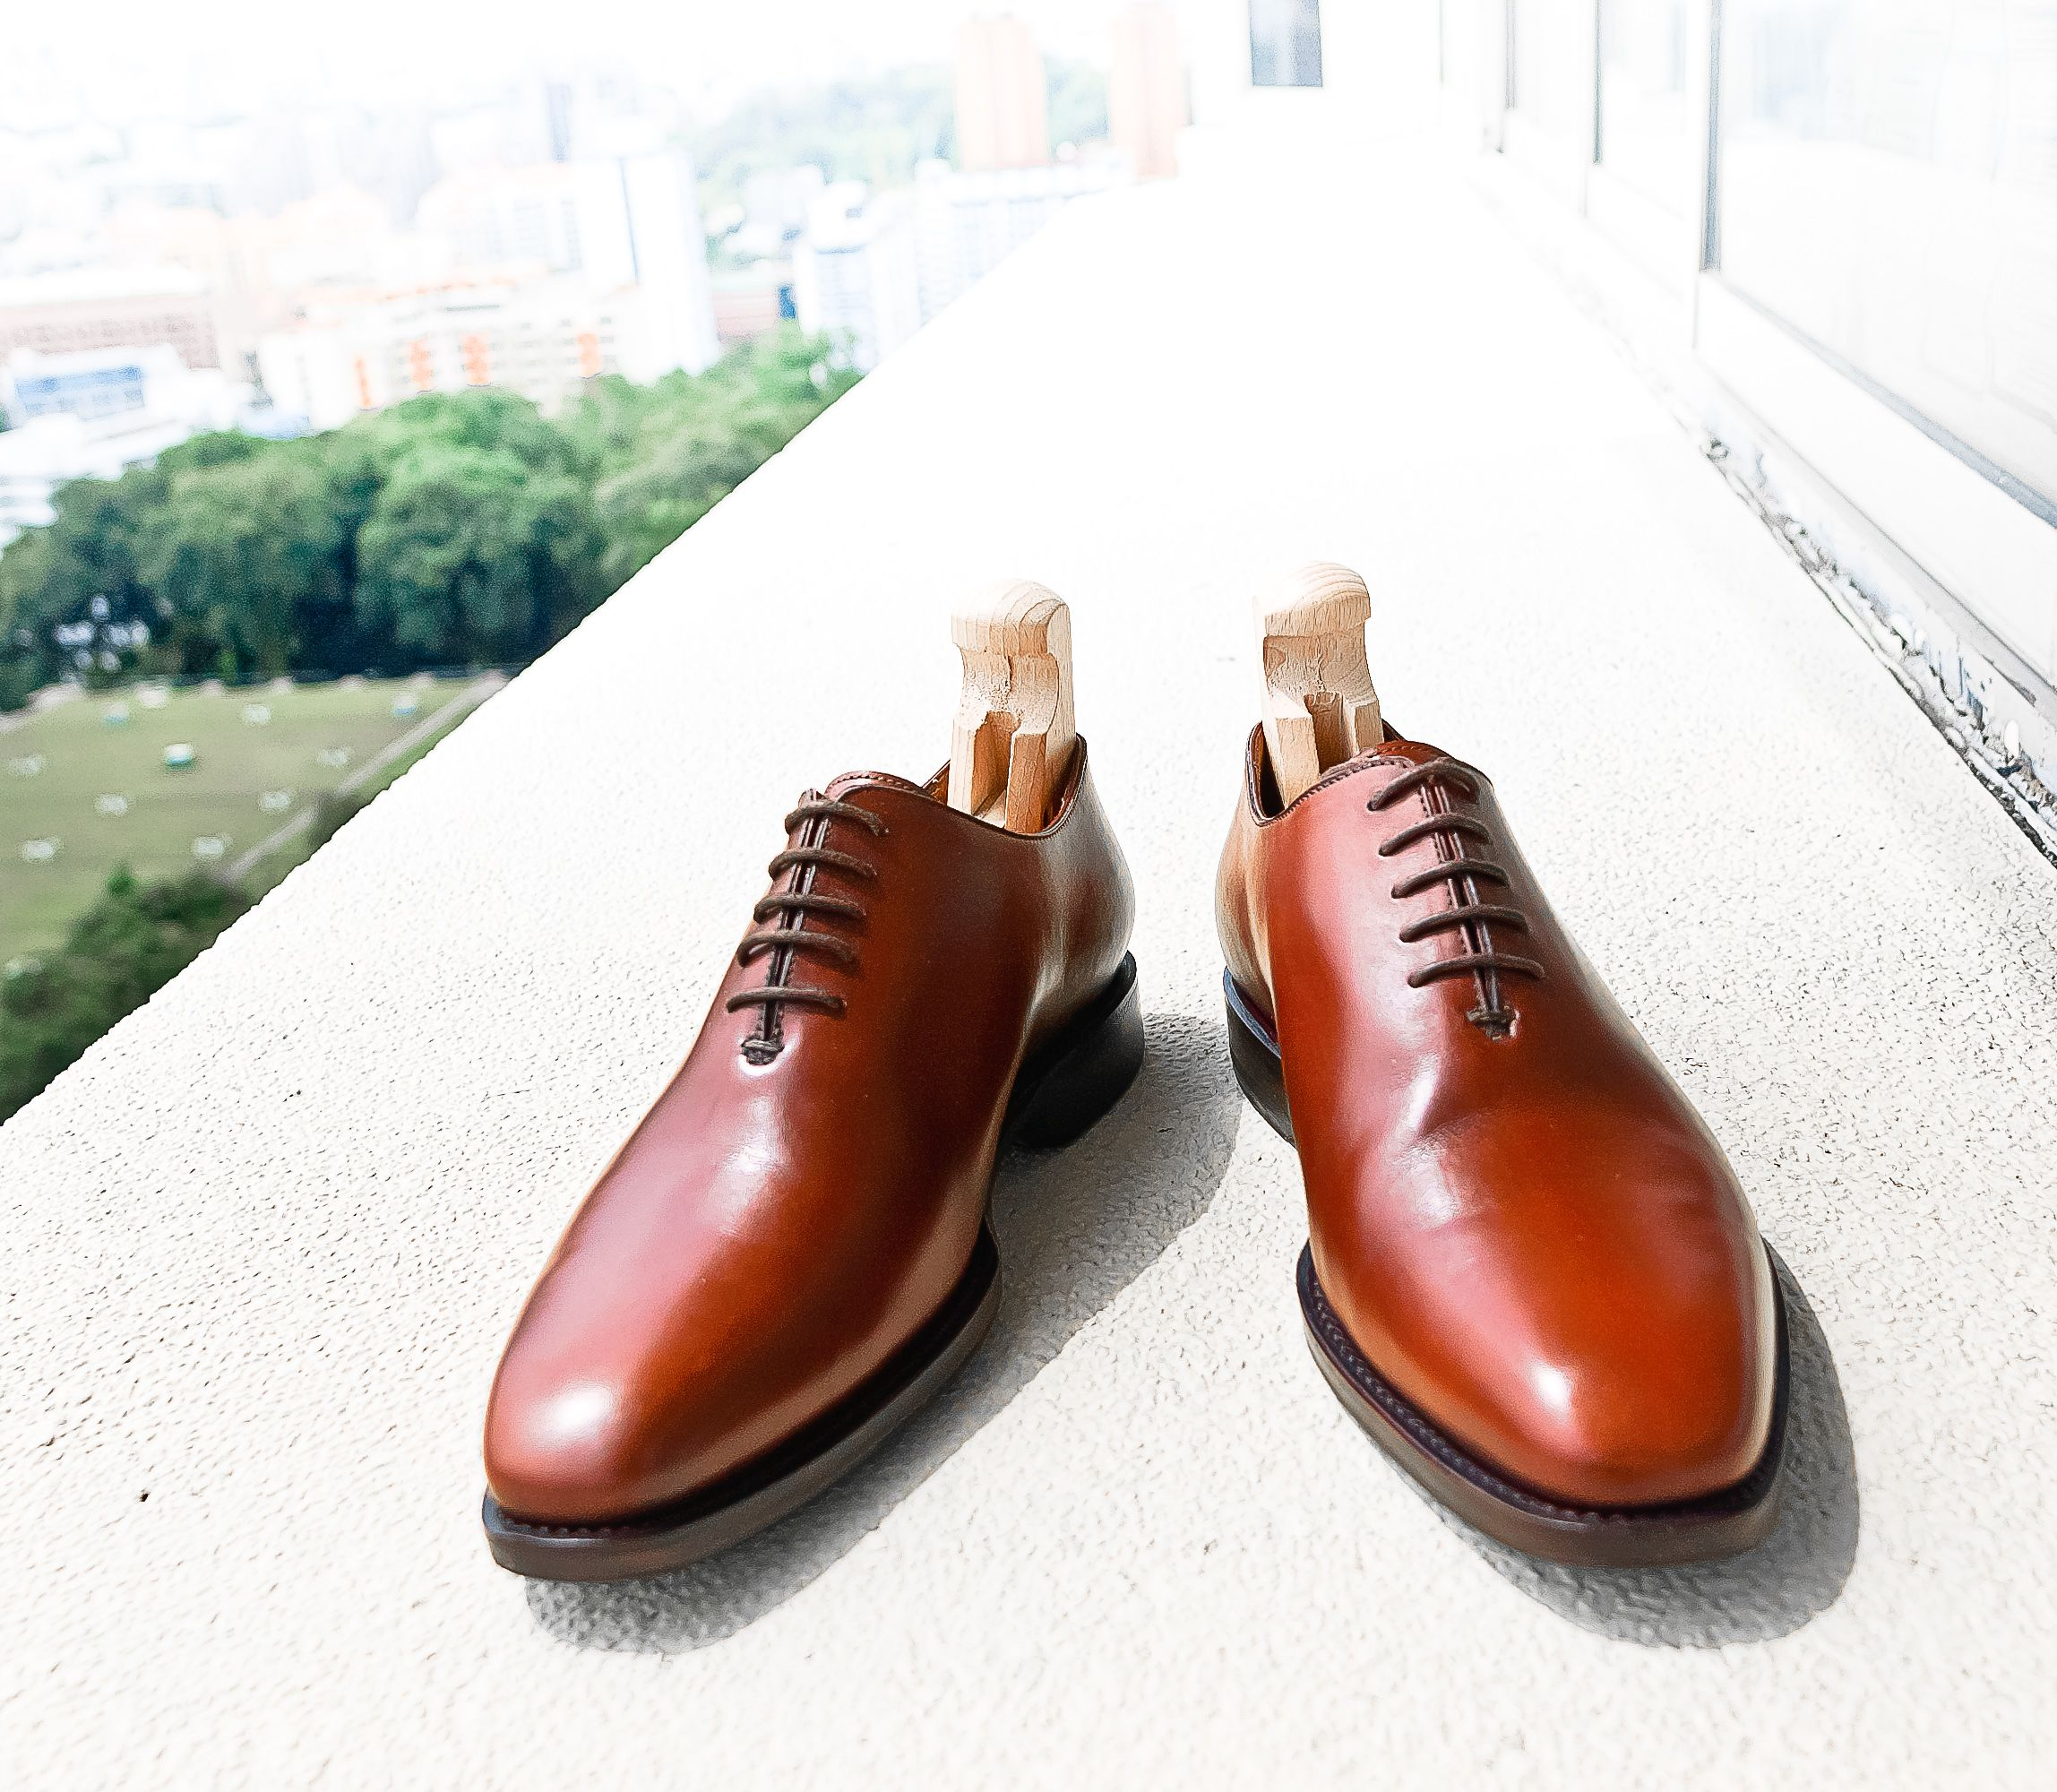 Cudio for Rossi 5 eyelet chisel-toe whole cut Oxford.    Dark mahogany calf, hand burnished, full leather lining.    Goodyear welted, single leather sole, quarter rubber heel.    Handmade in Indonesia.